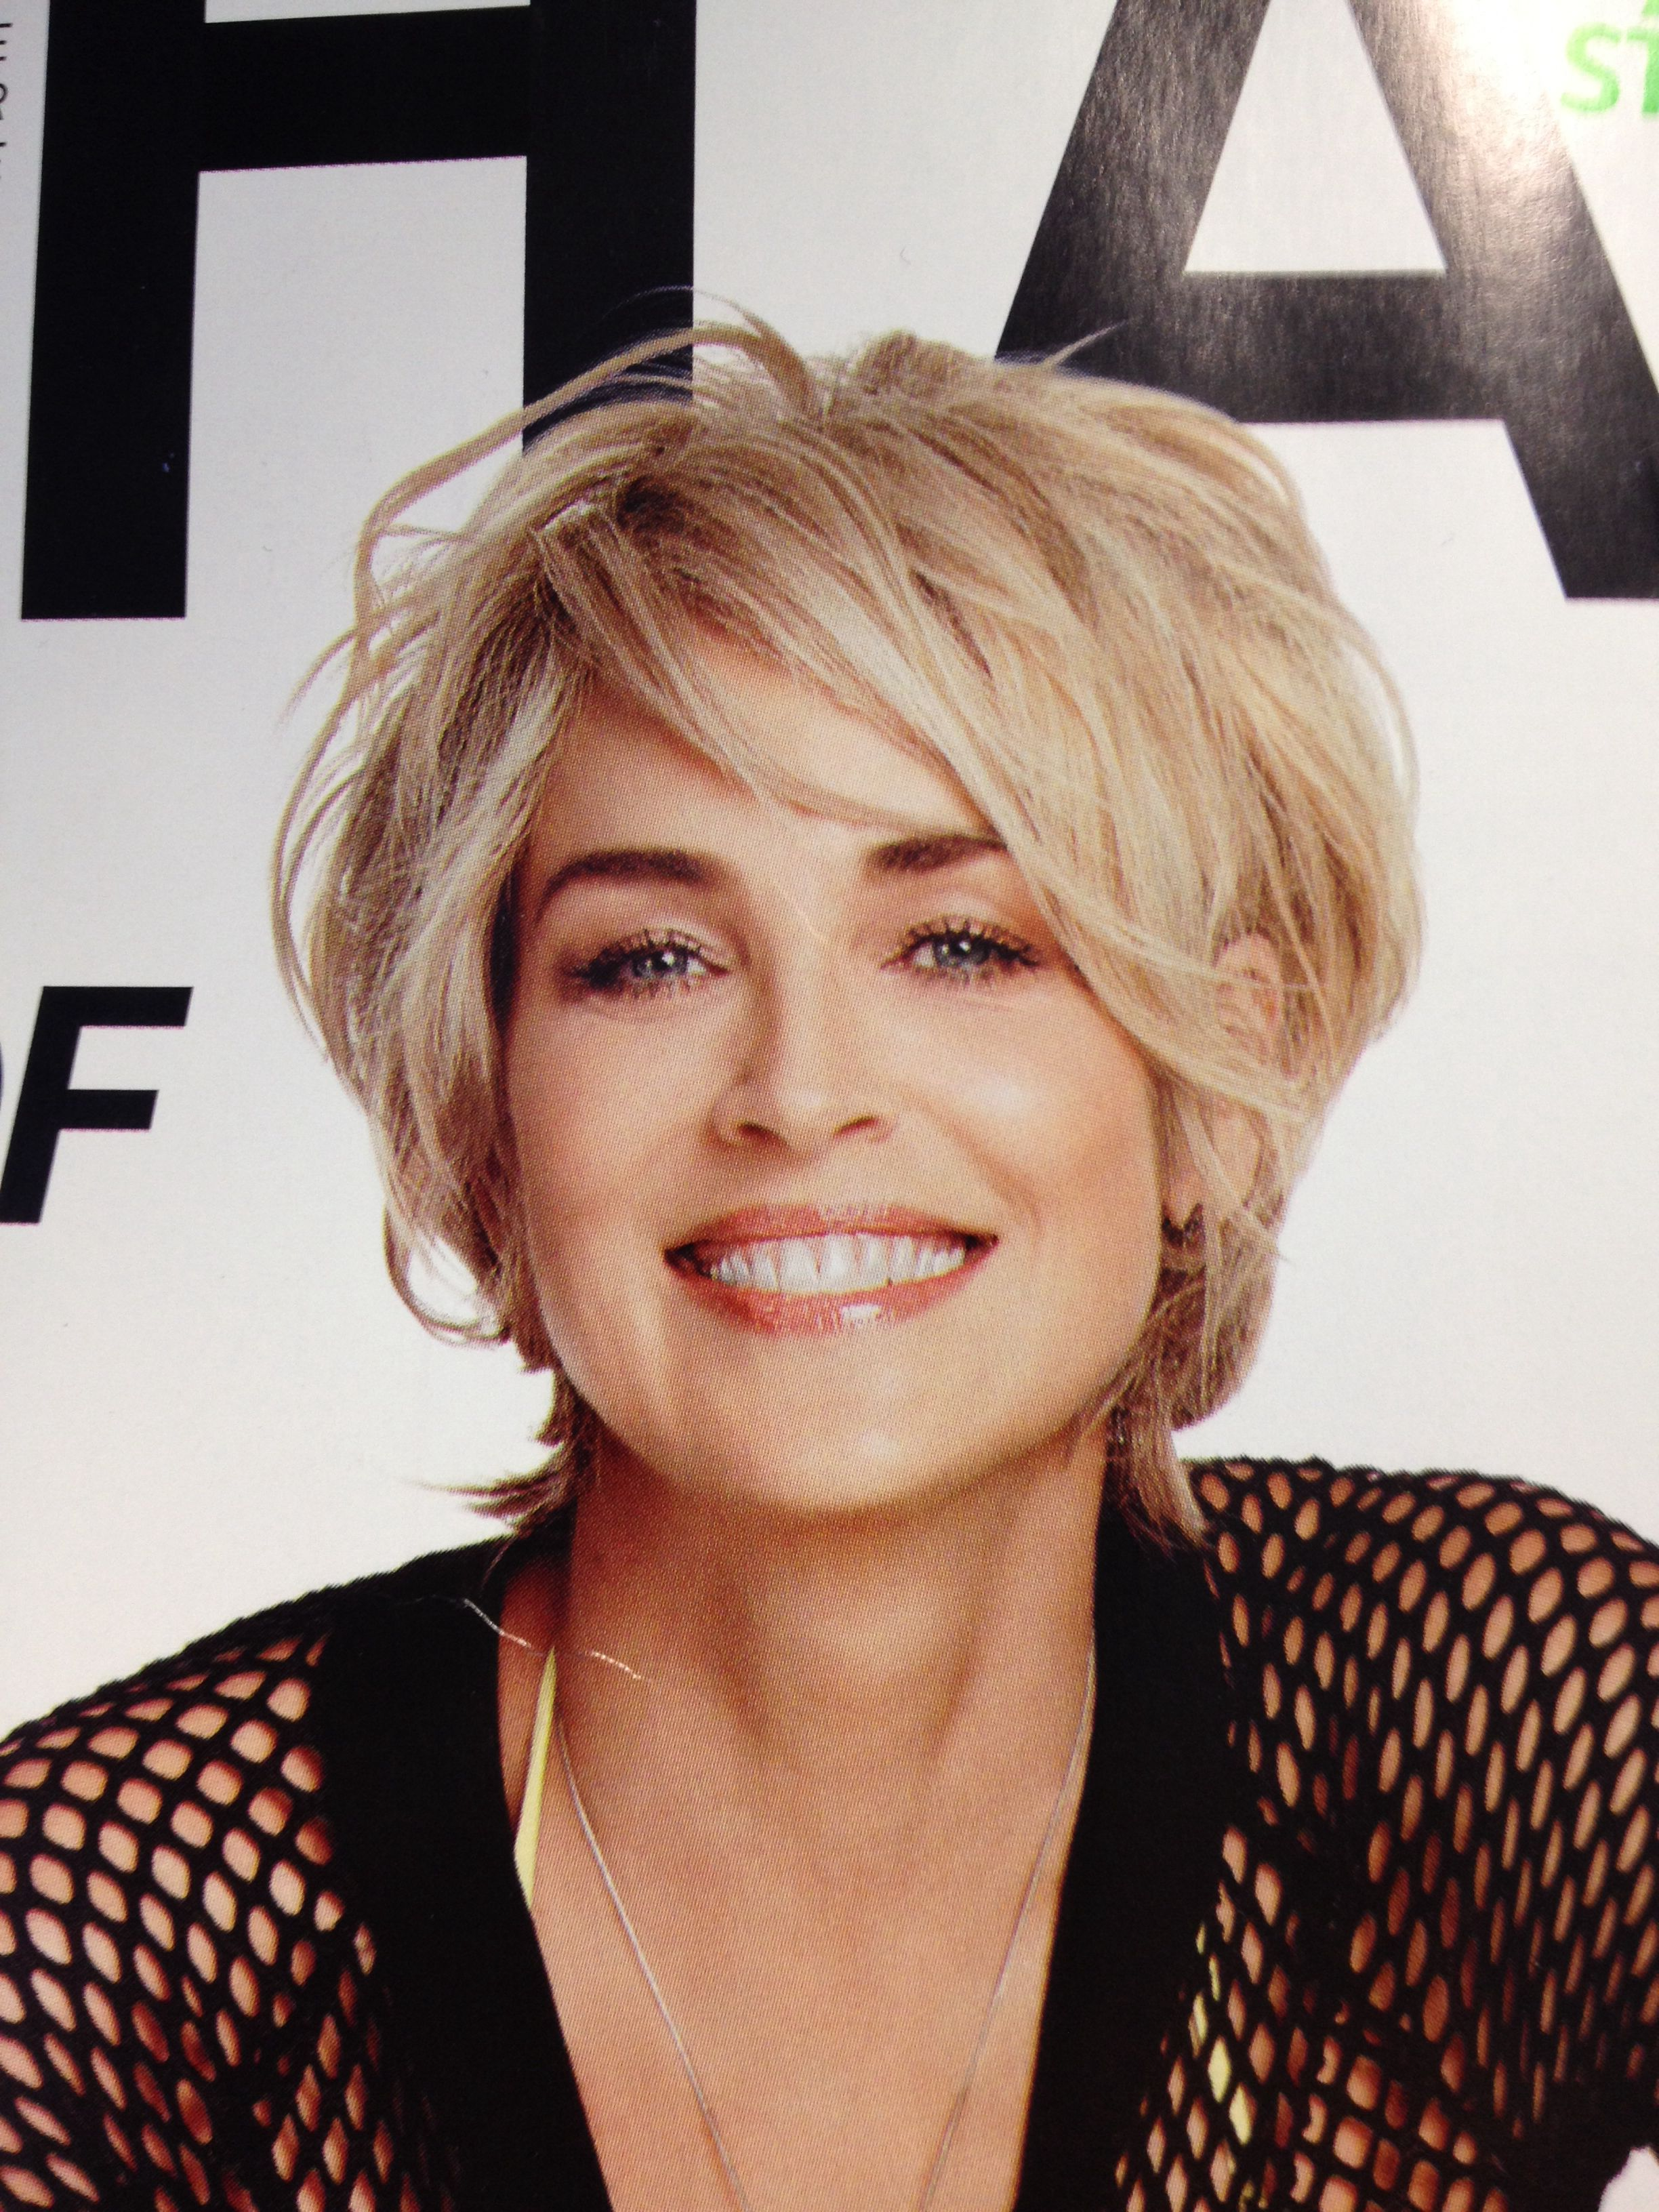 Haarstyling Kurze Haare Sharon Stone At 56 I Like Her Hair Color And Style